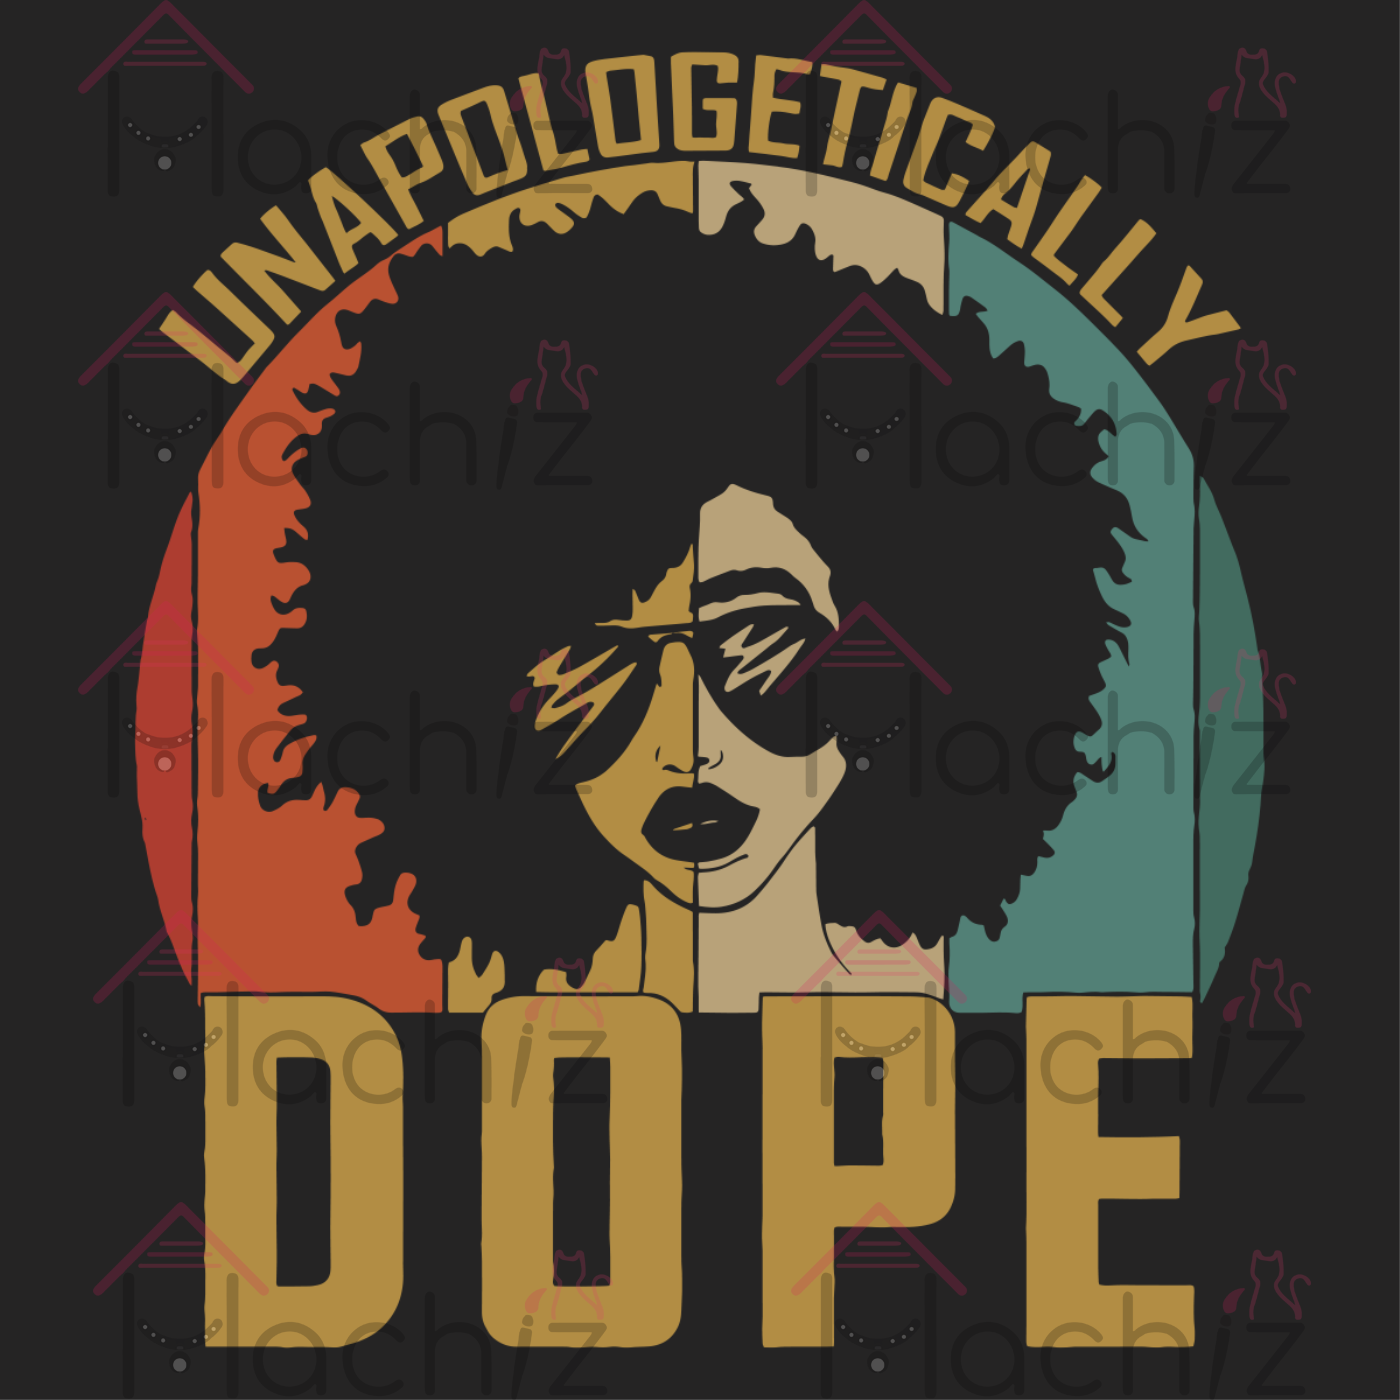 Unapologetically dope, trending svg, black history, black history month,black girl, melanin, black lives matter svg,black melanin, gift for black girl, black girl magic, african american,afro queen, afro melanin, african melanin